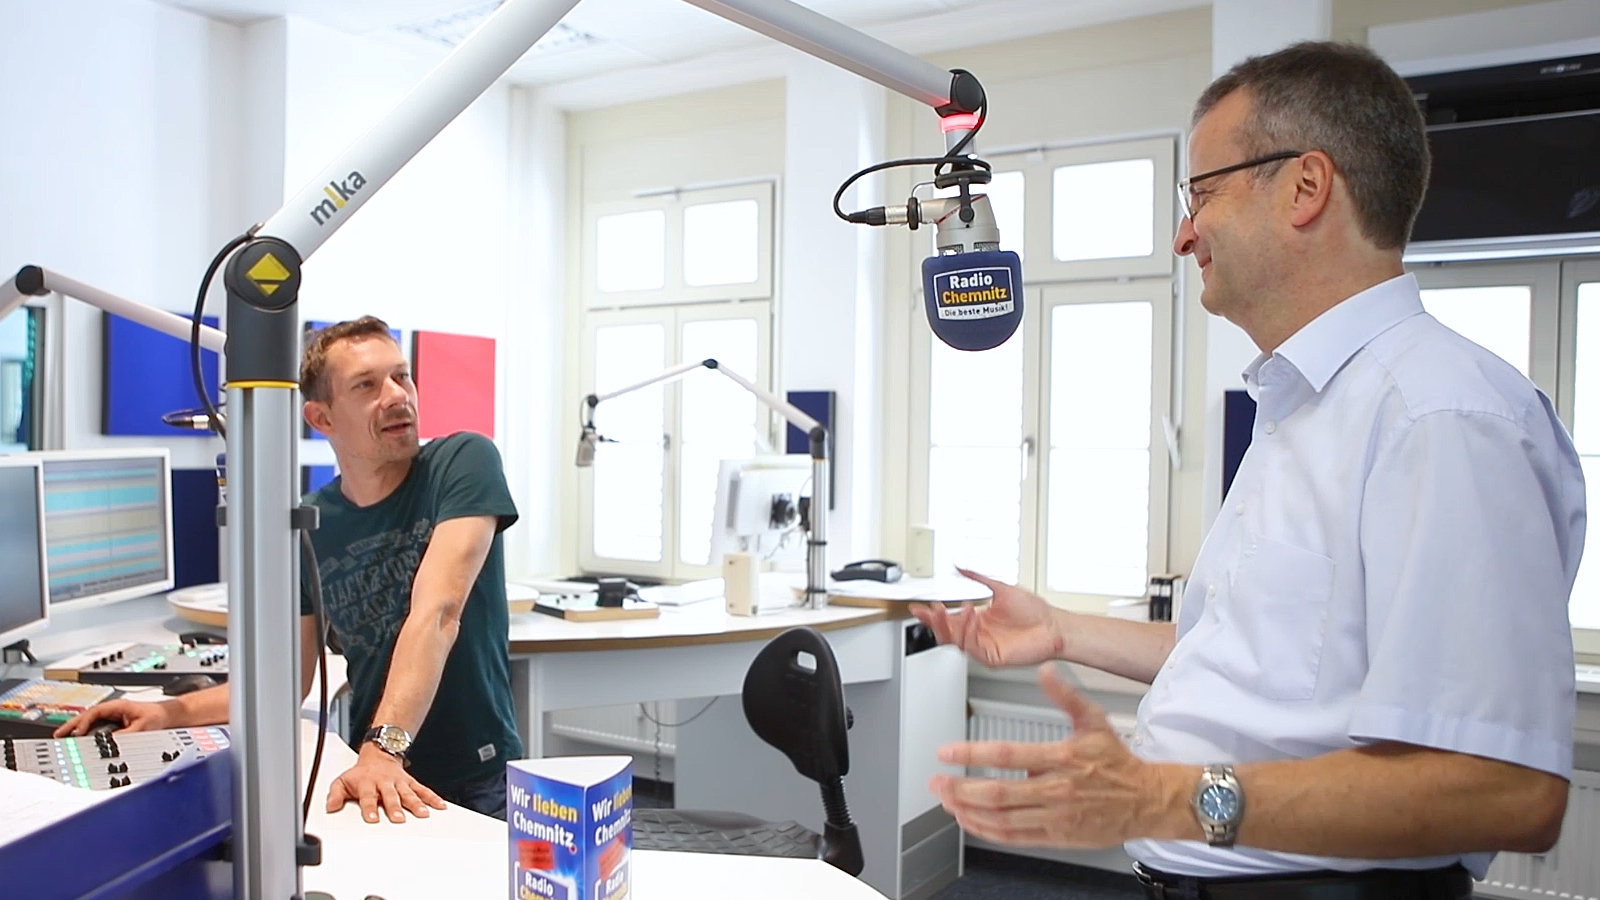 Picture of Mario Steinebach and a radio host during an interview